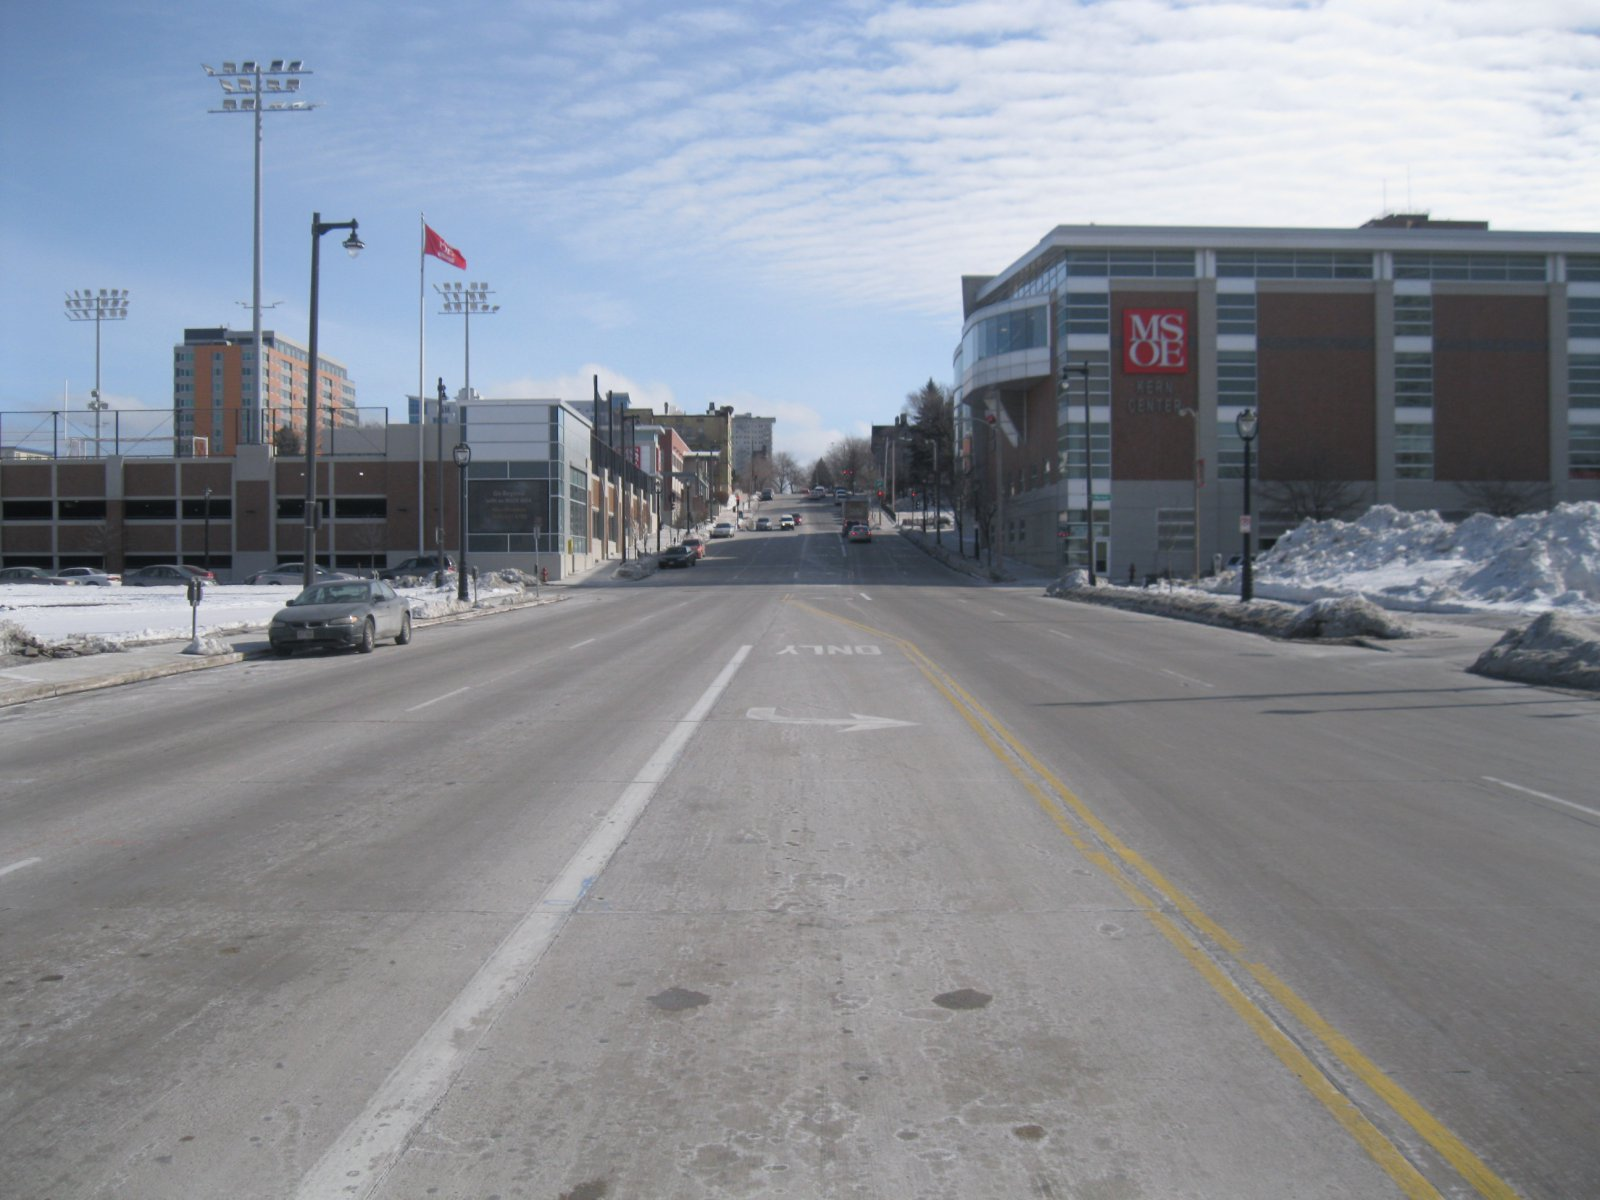 Intersection of N. Water and E. Knapp streets - looking east.